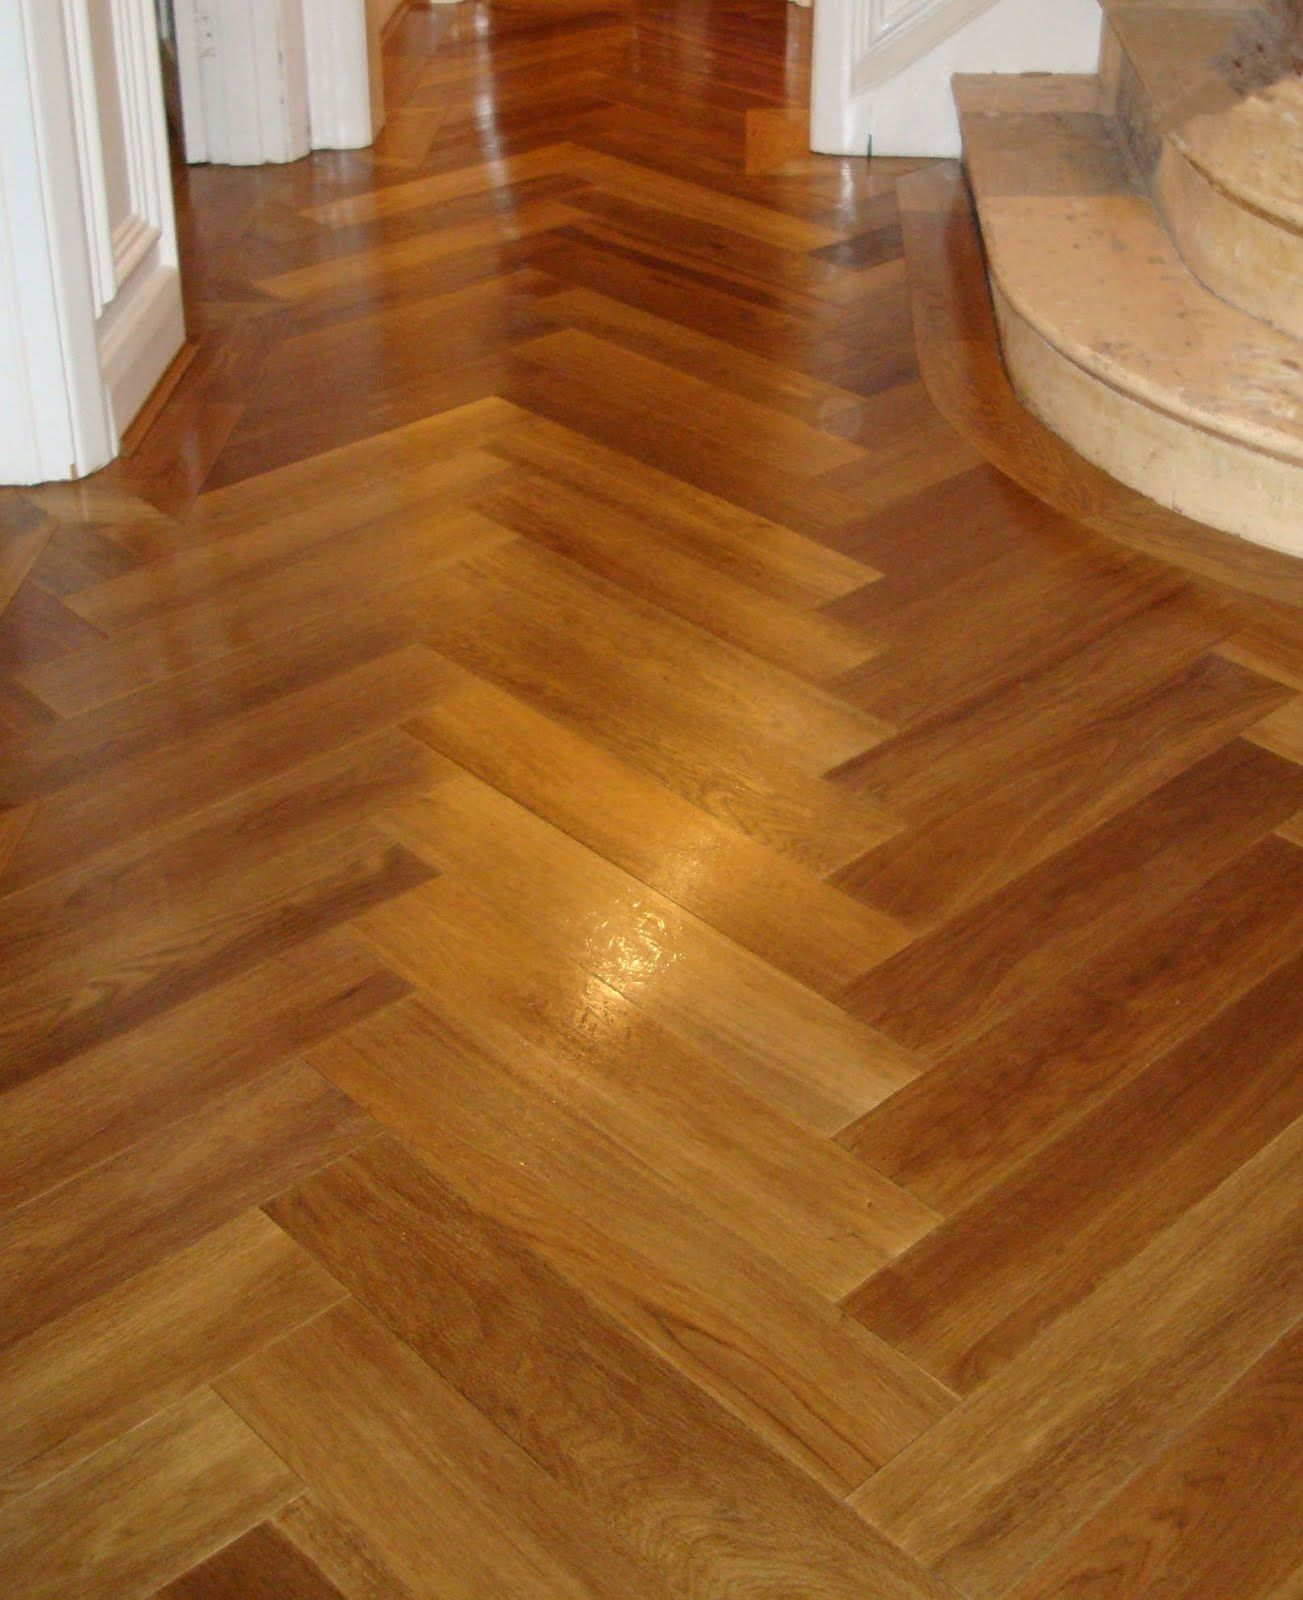 Wood flooring ideas wood floor wood floor design wood floor design ideas ideas for the house Wood tile flooring